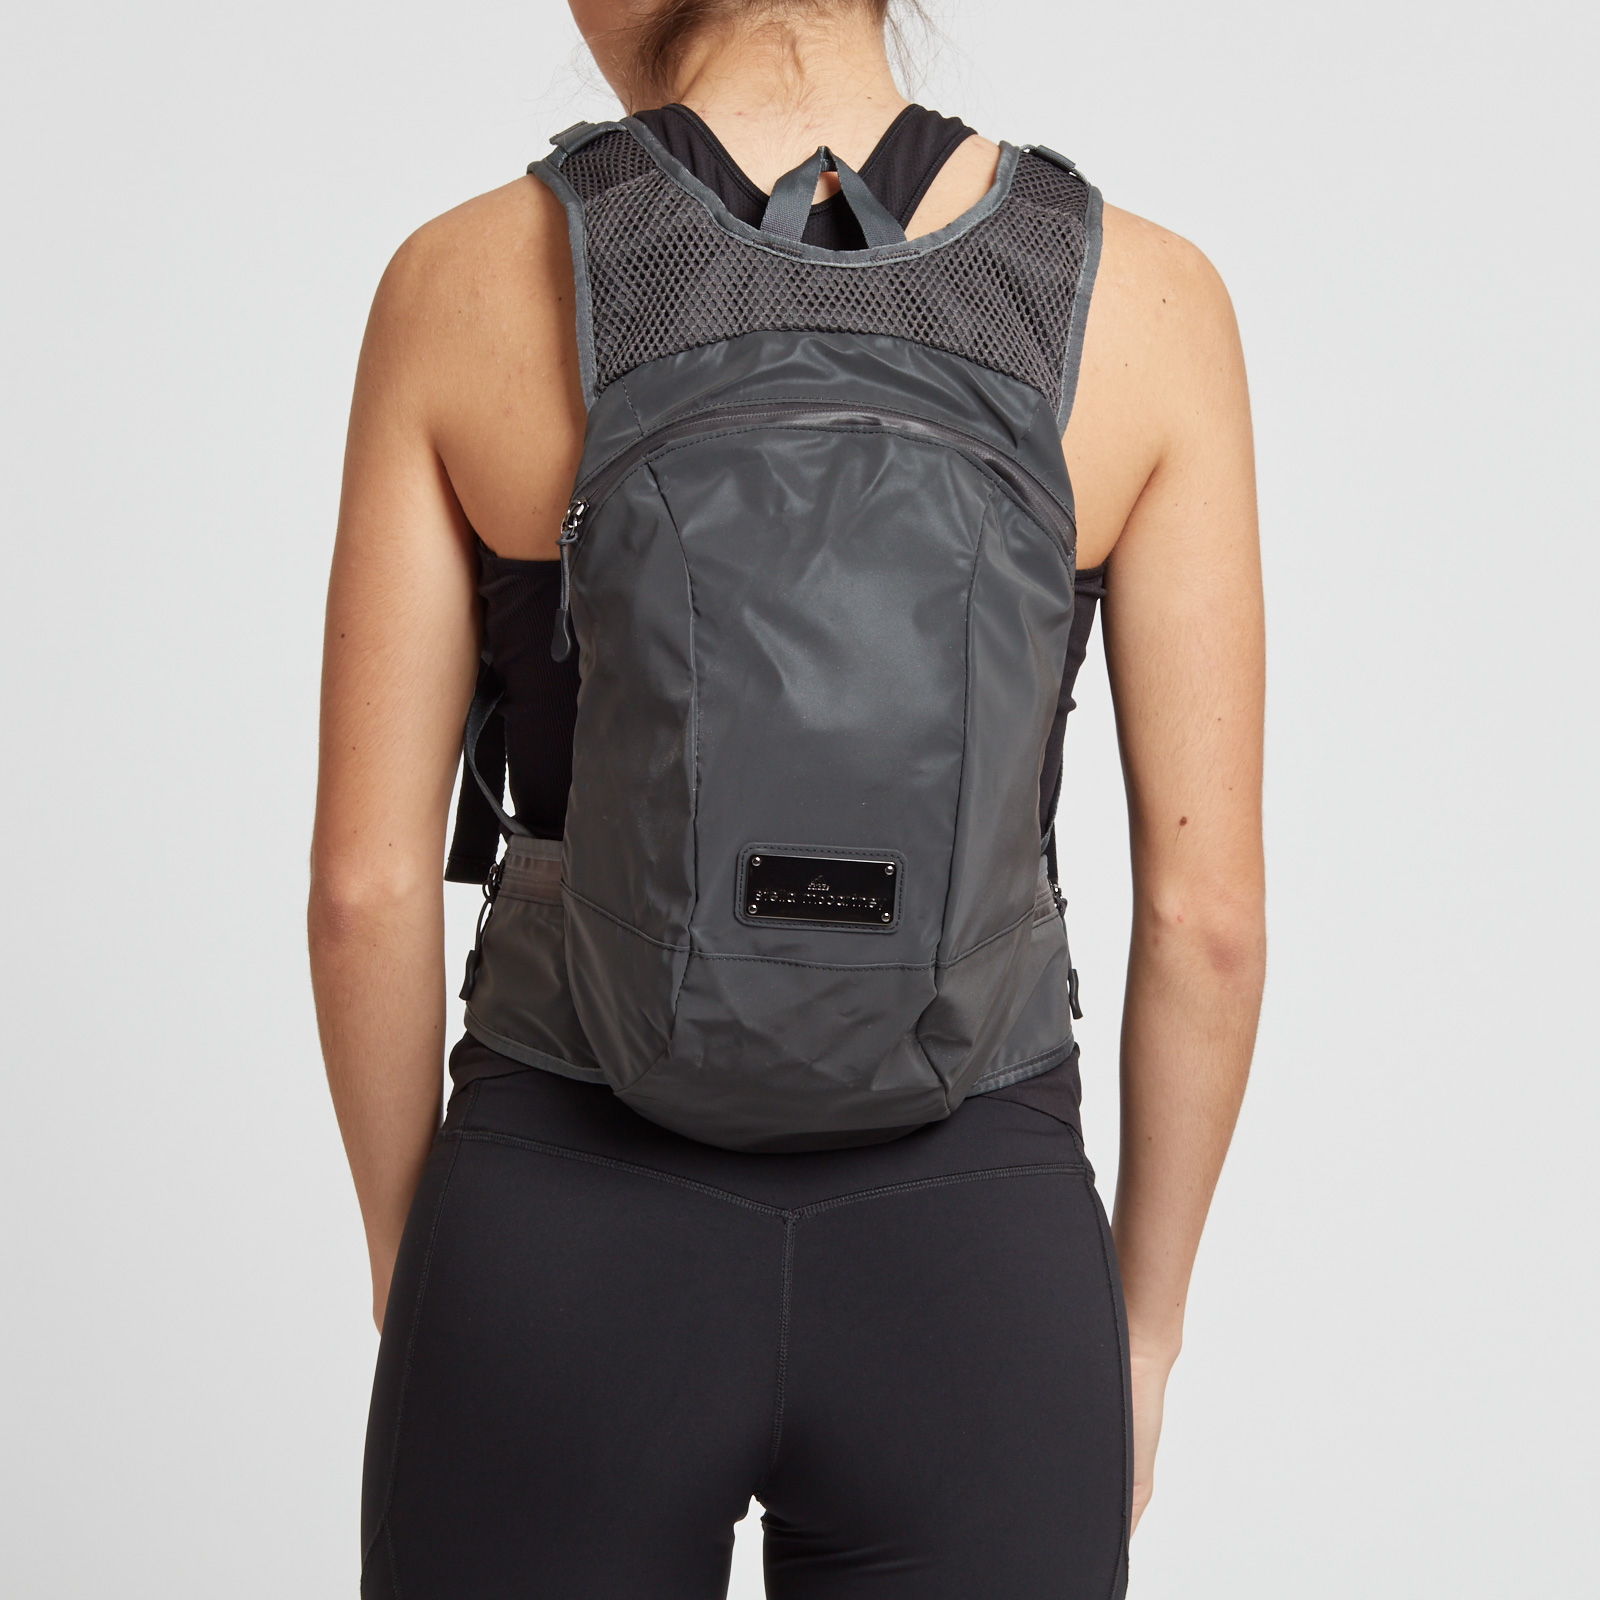 ad9909c753 adidas Backpack - AI6439 - Sneakersnstuff